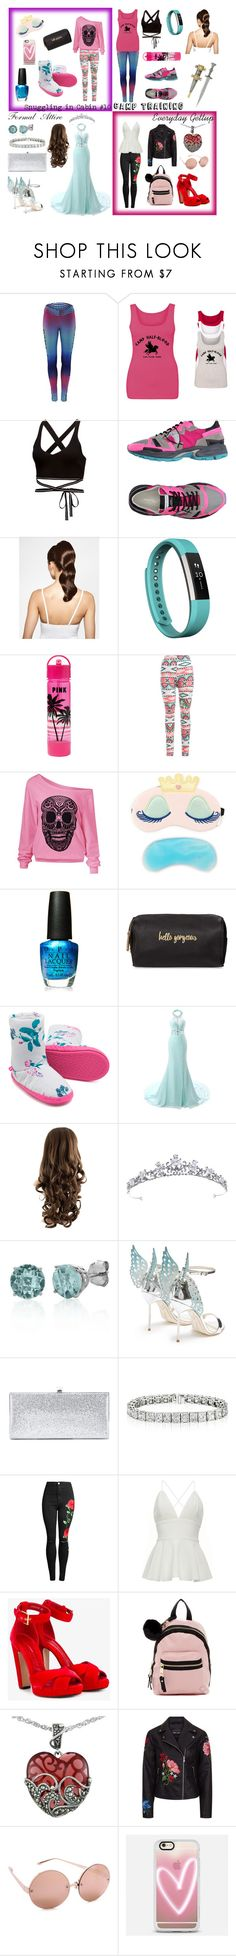 """""""Daughter of Aphrodite"""" by tiffany-du-plessis ❤ liked on Polyvore featuring Puma, Philippe Model, Hershesons, Fitbit, Therapy, OPI, Neiman Marcus, Joules, Belk & Co. and Sophia Webster"""